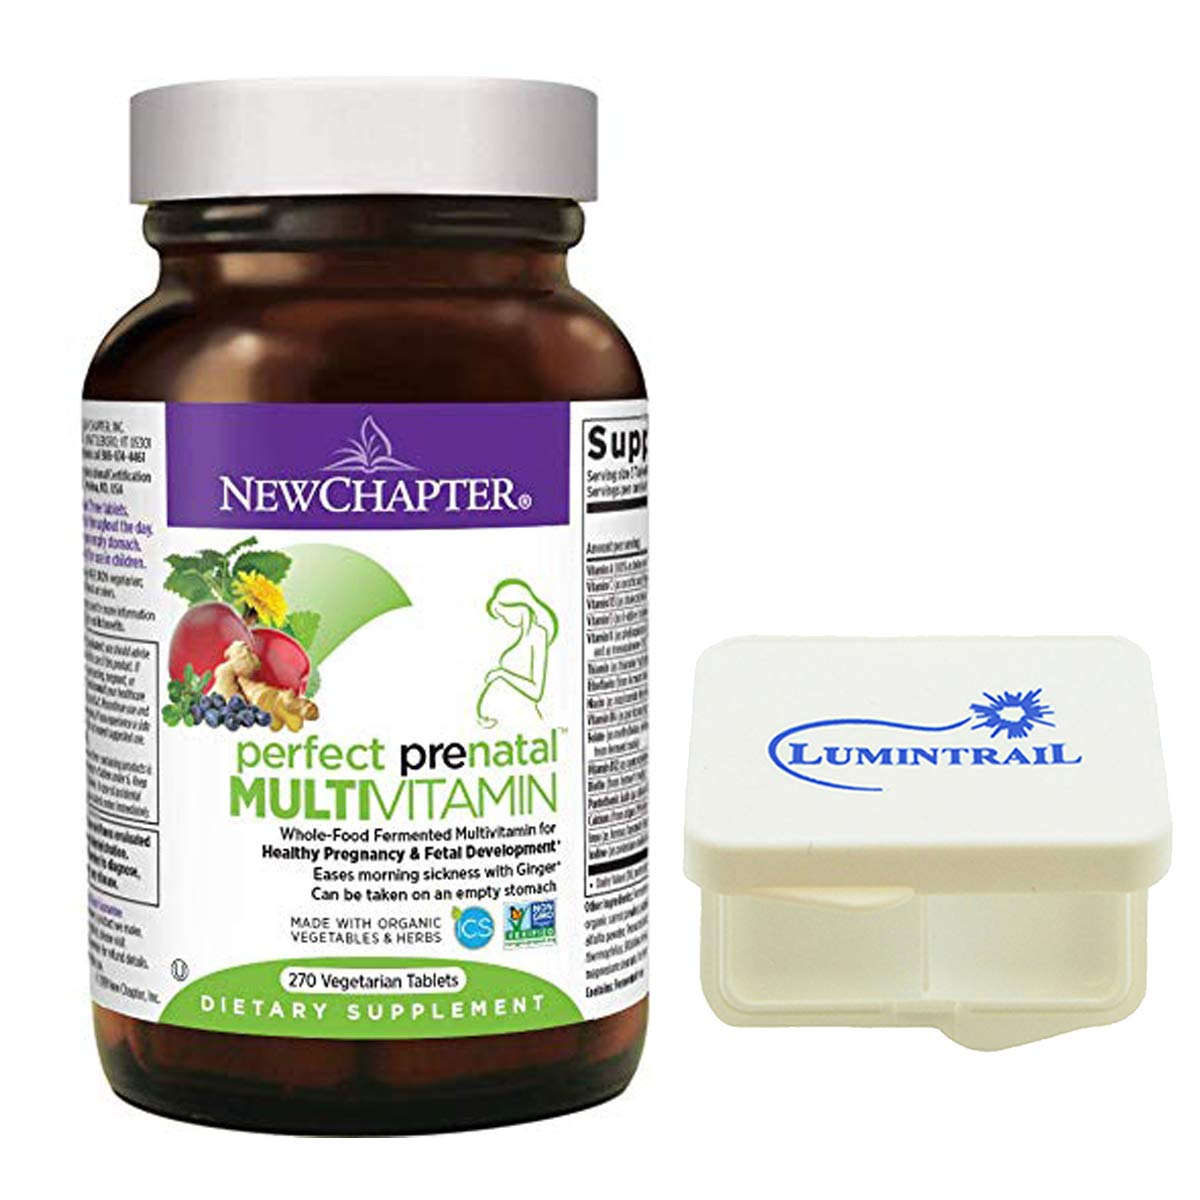 New Chapter Perfect Prenatal Vitamins, Womens Multivitamin, Eases Morning Sickness with Ginger - 270 Vegetarian Tablets Bundle with a Lumintrail Pill Case